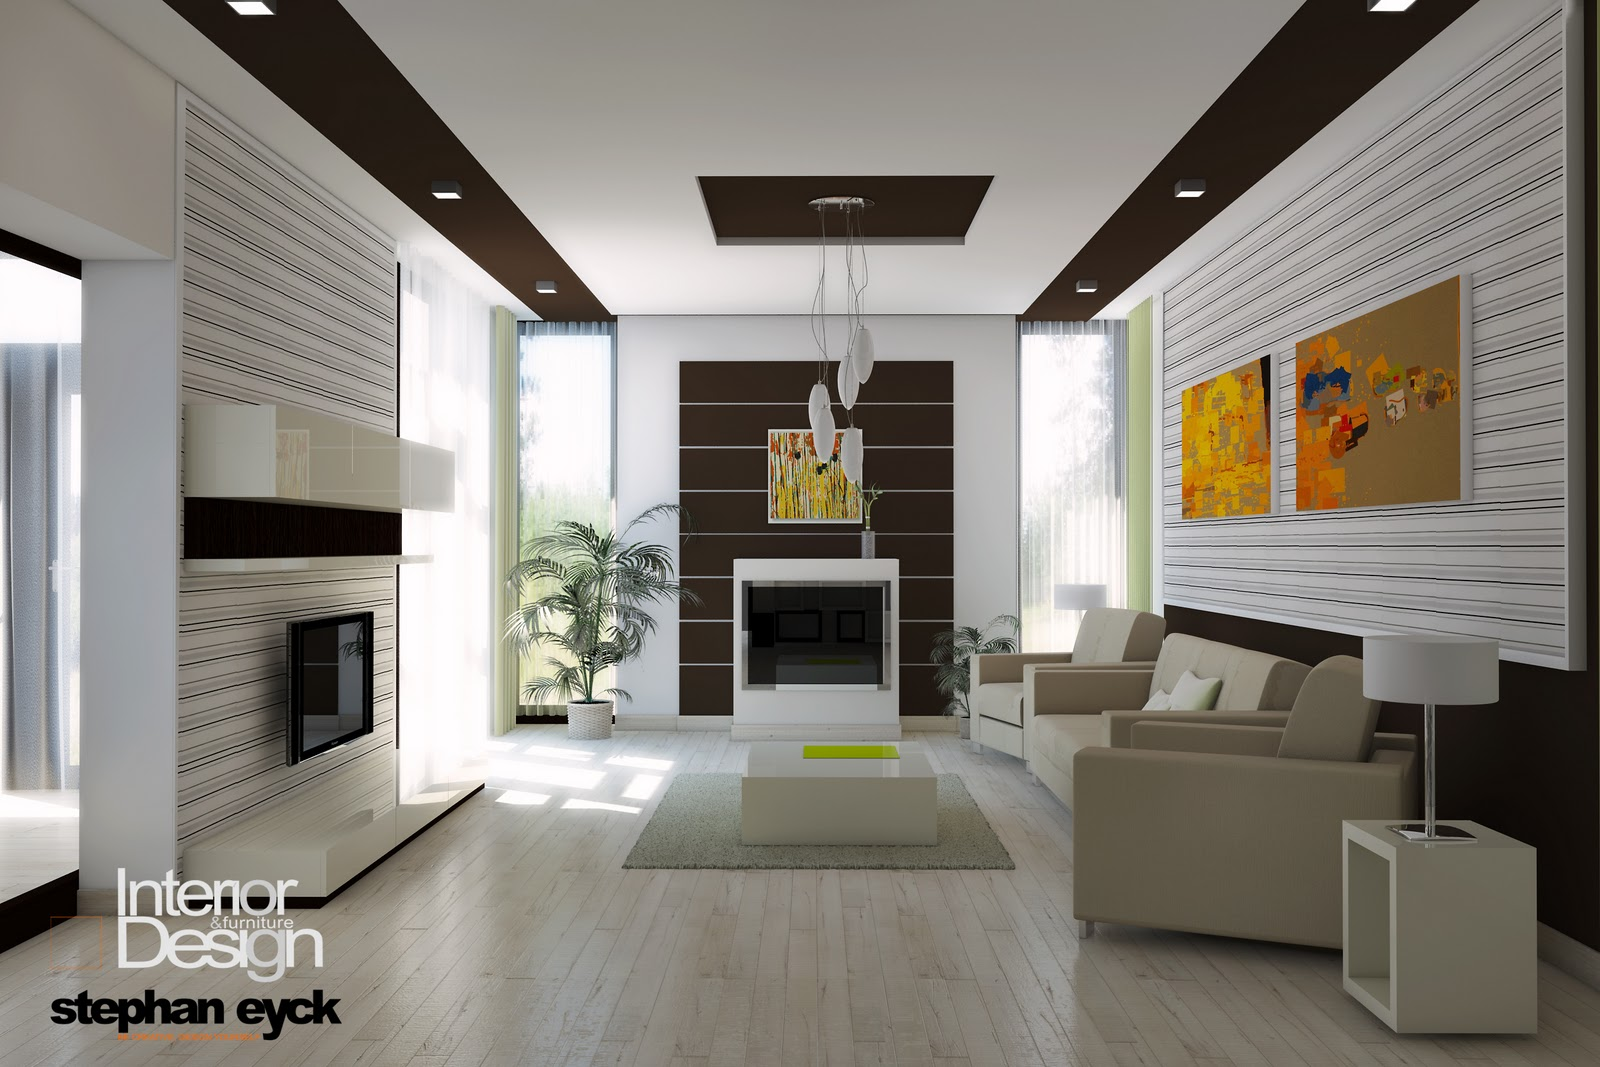 Design interior casa bucuresti livingroom for Casa design